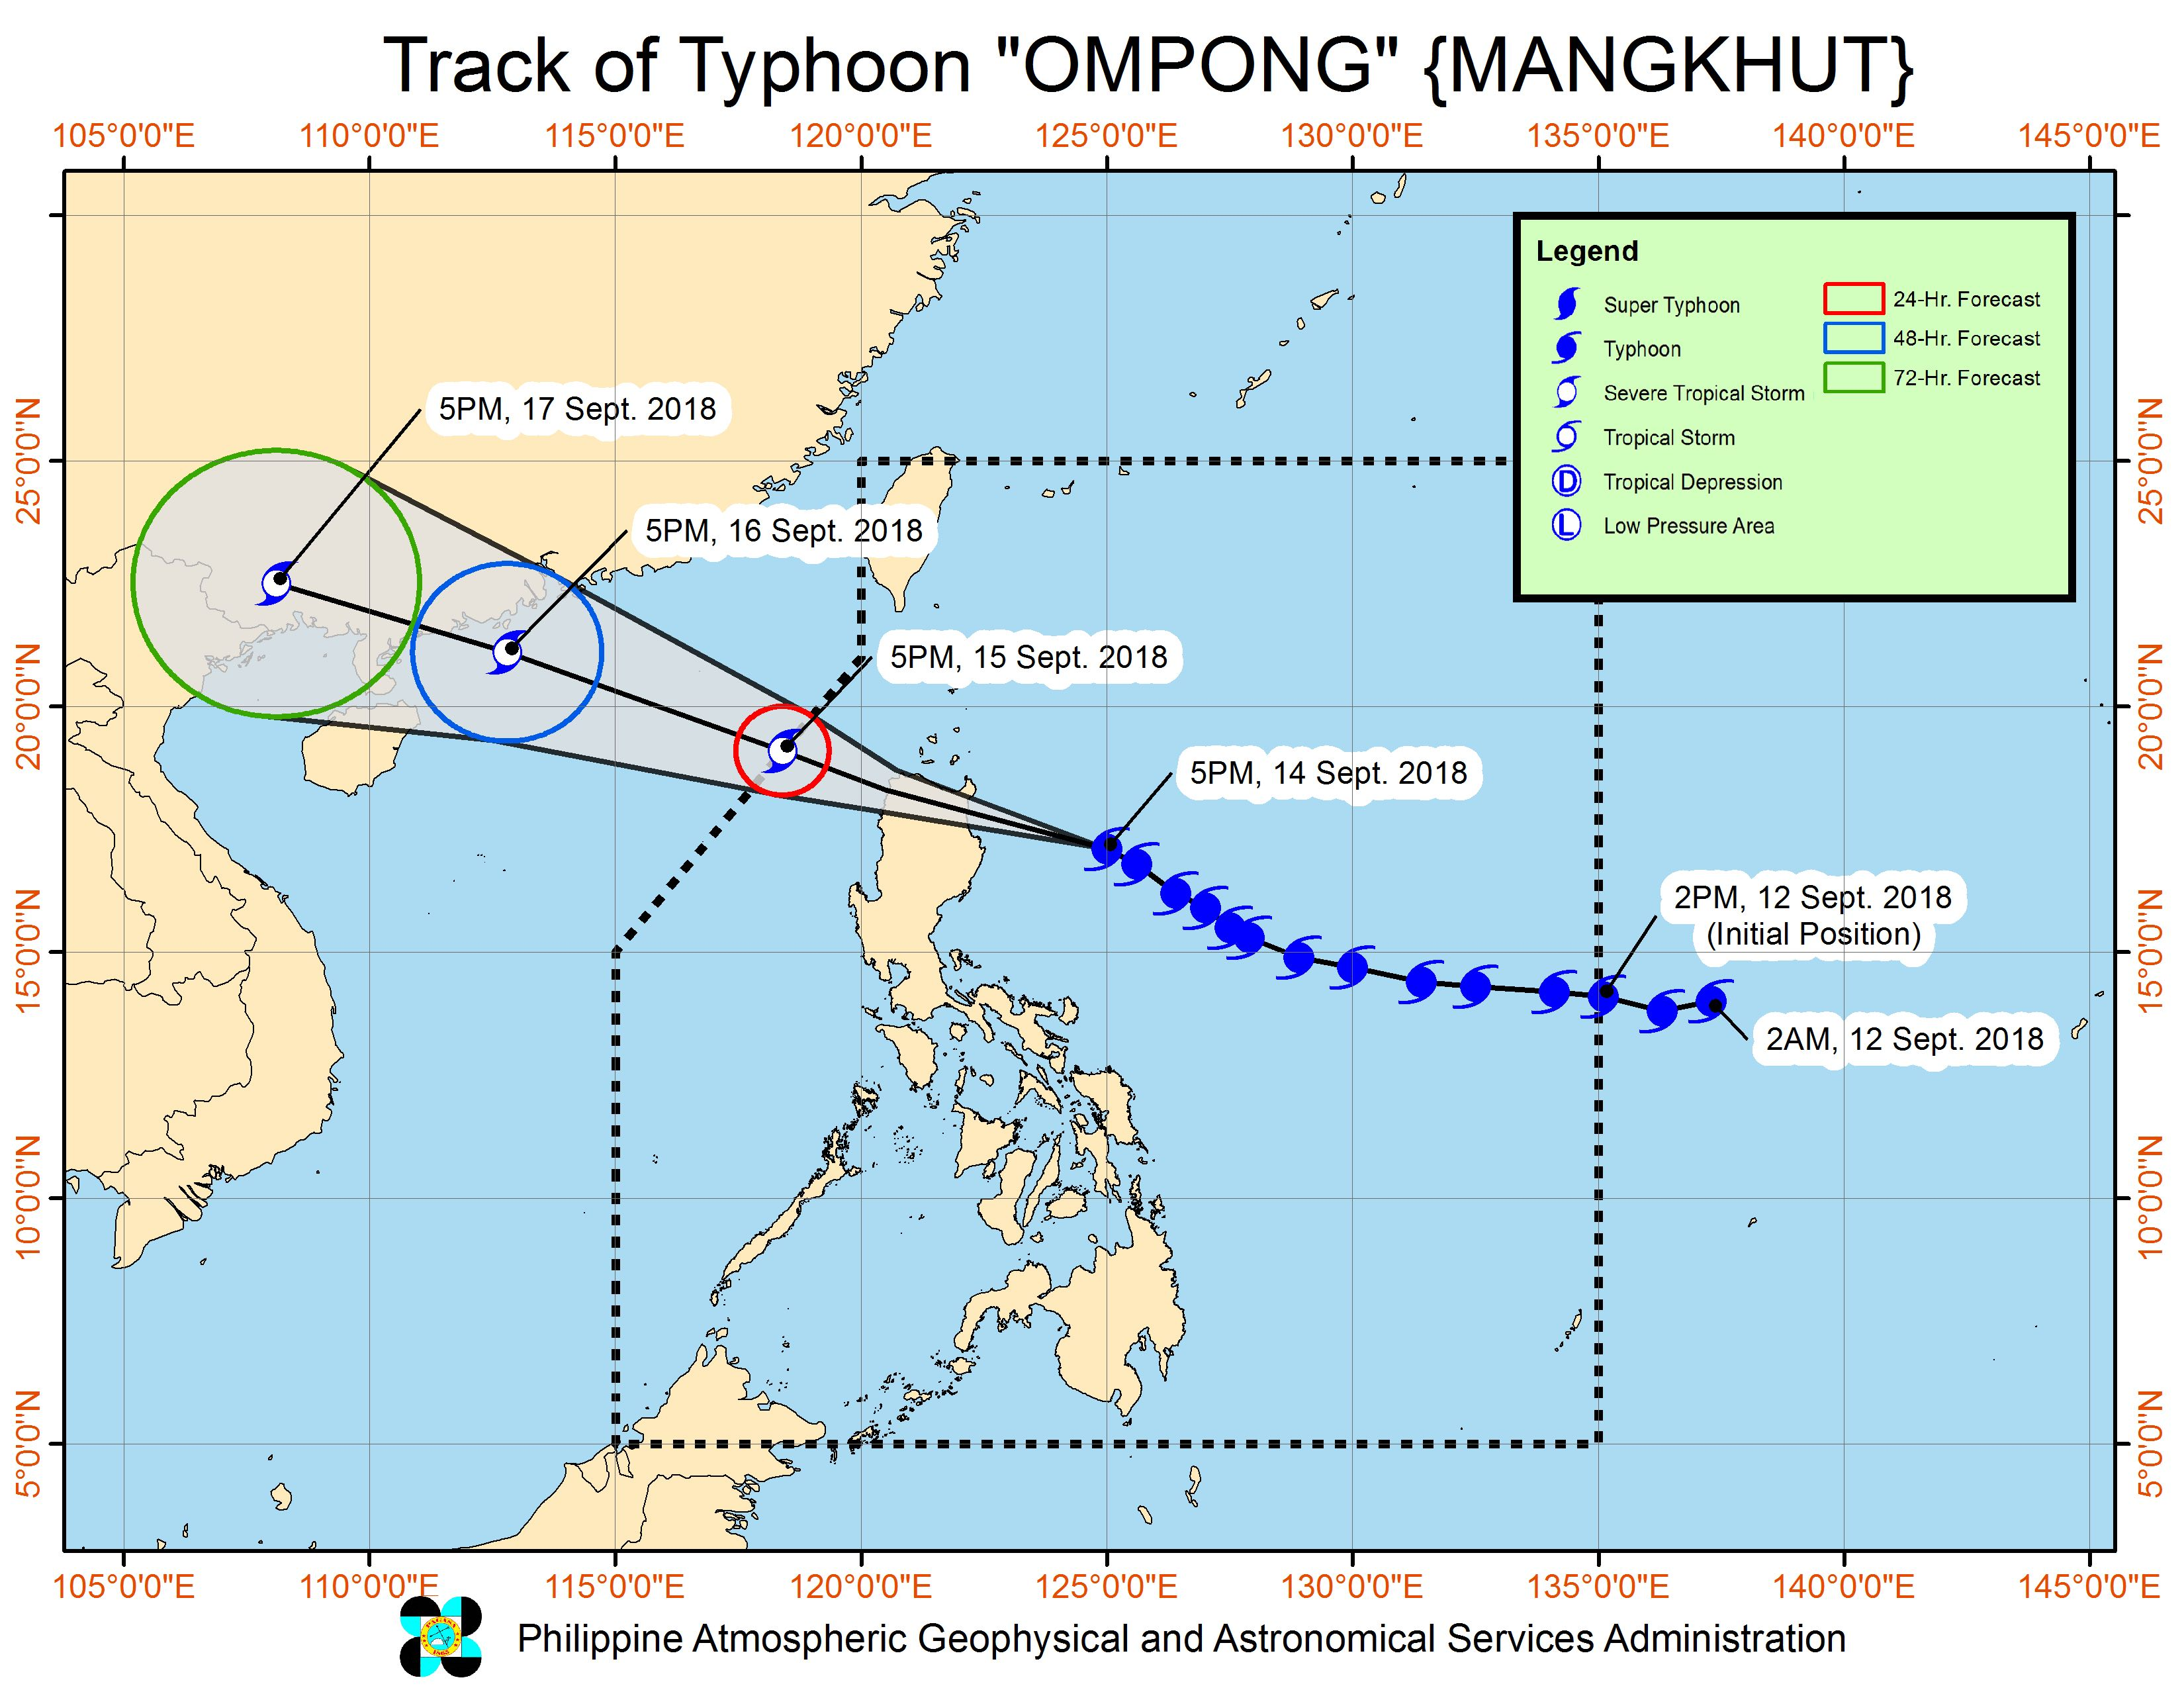 Forecast track of Typhoon Ompong (Mangkhut) as of September 14, 2018, 8 pm. Image from PAGASA